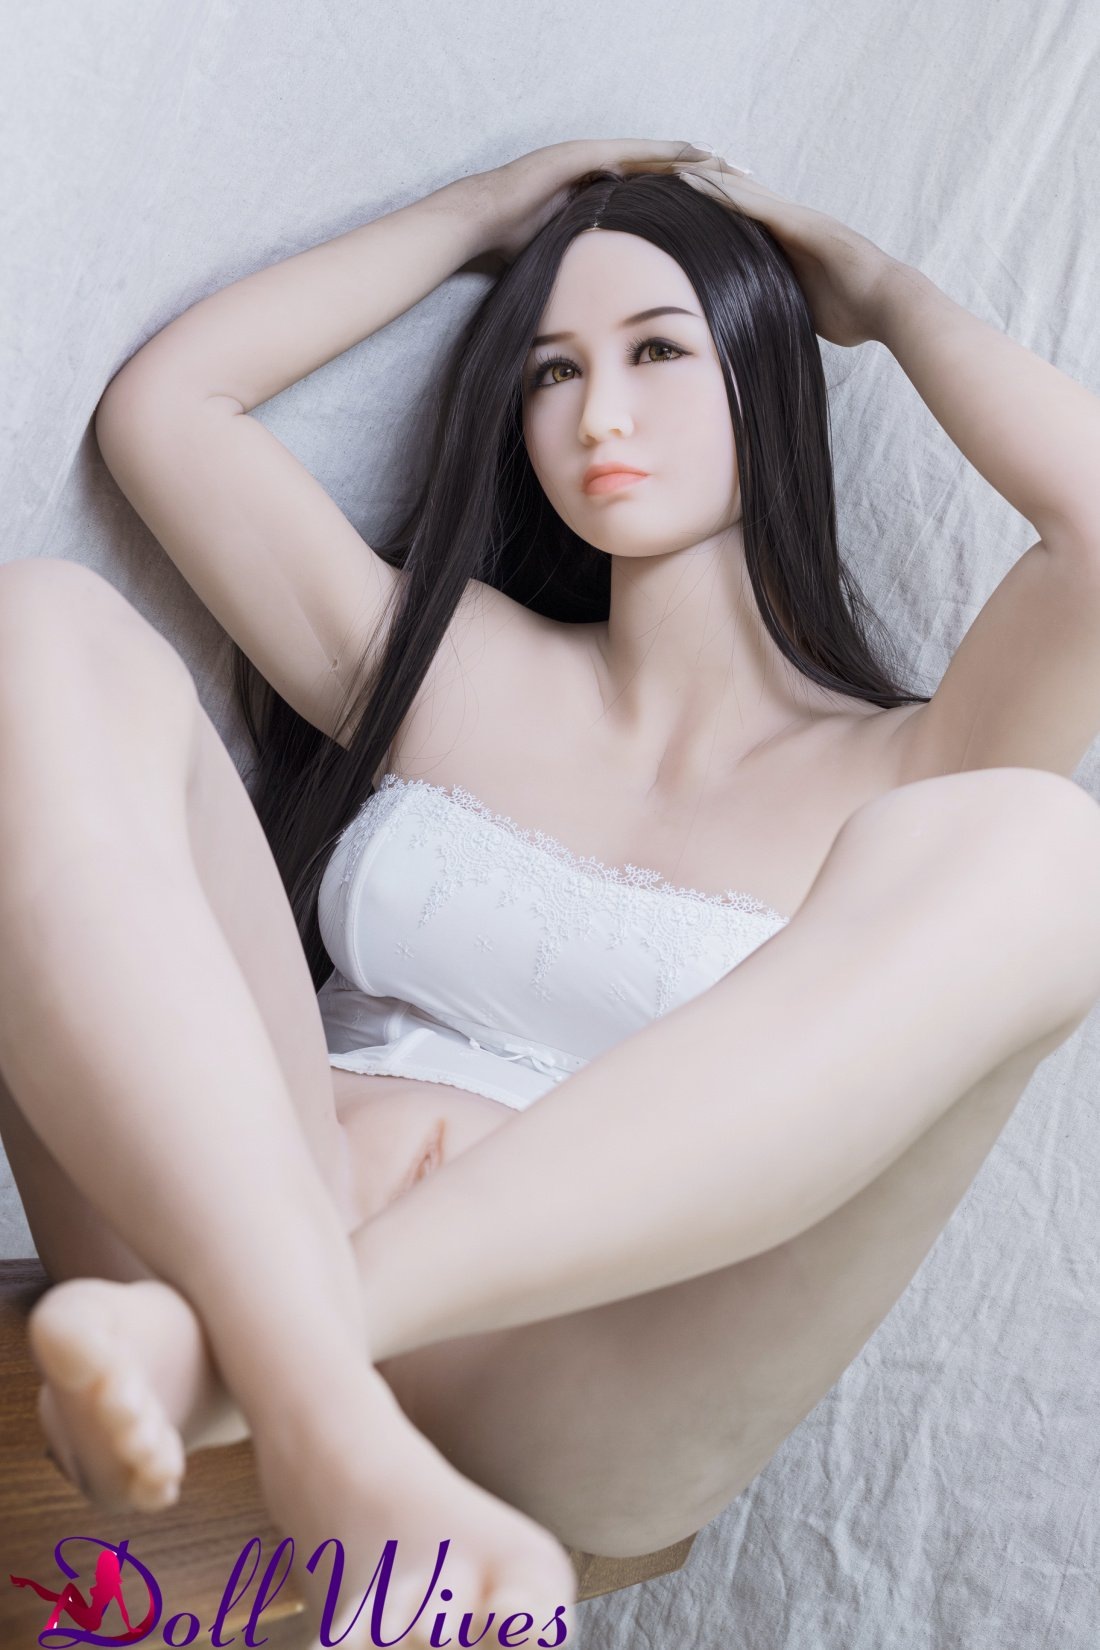 New Japanese Sex Doll Series